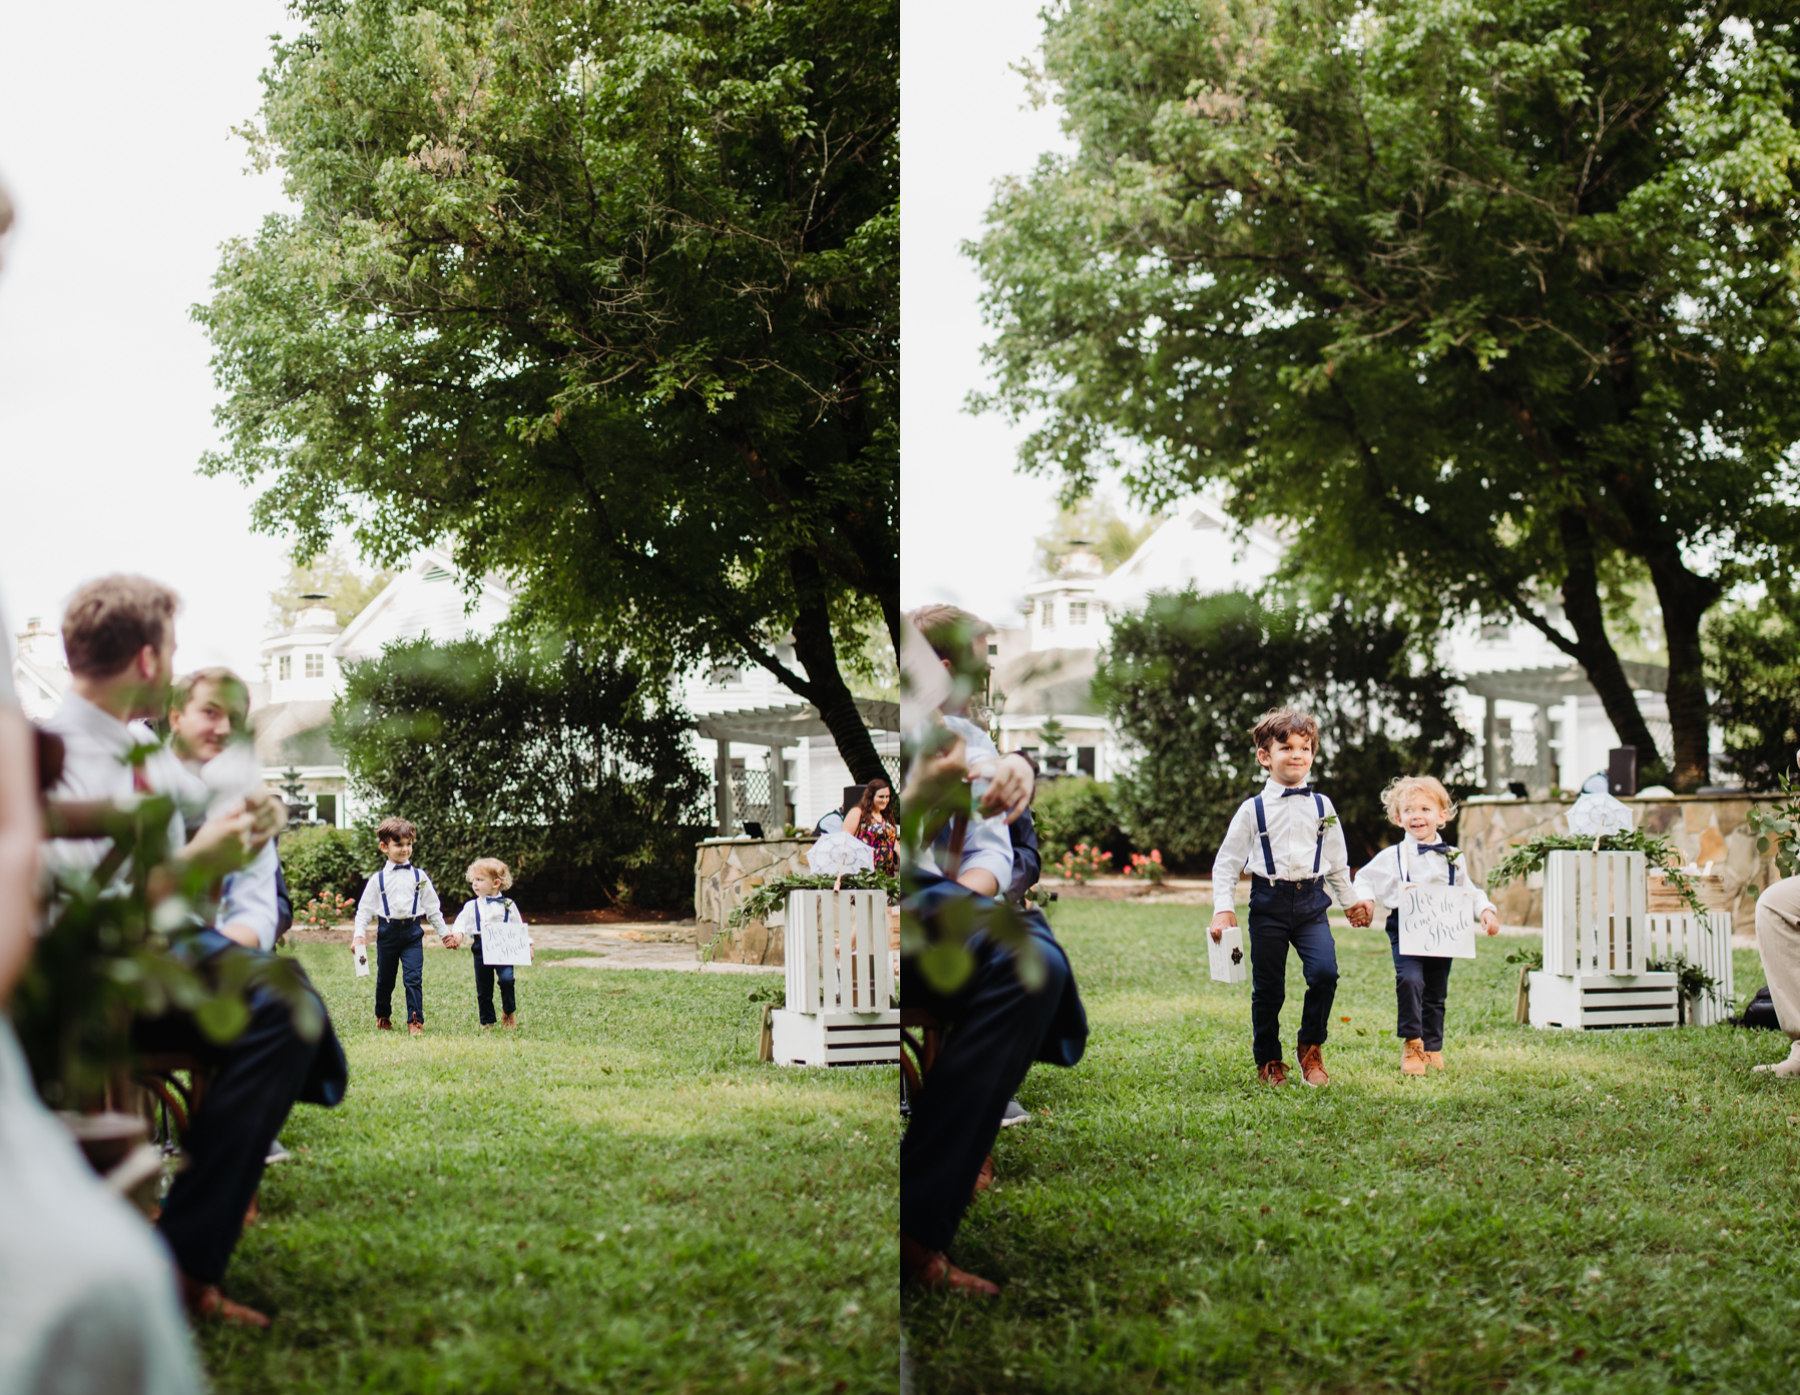 Little ring-bearers coming down the aisle at a Sunny summer wedding at Dara's Garden in Knoxville, Tennessee